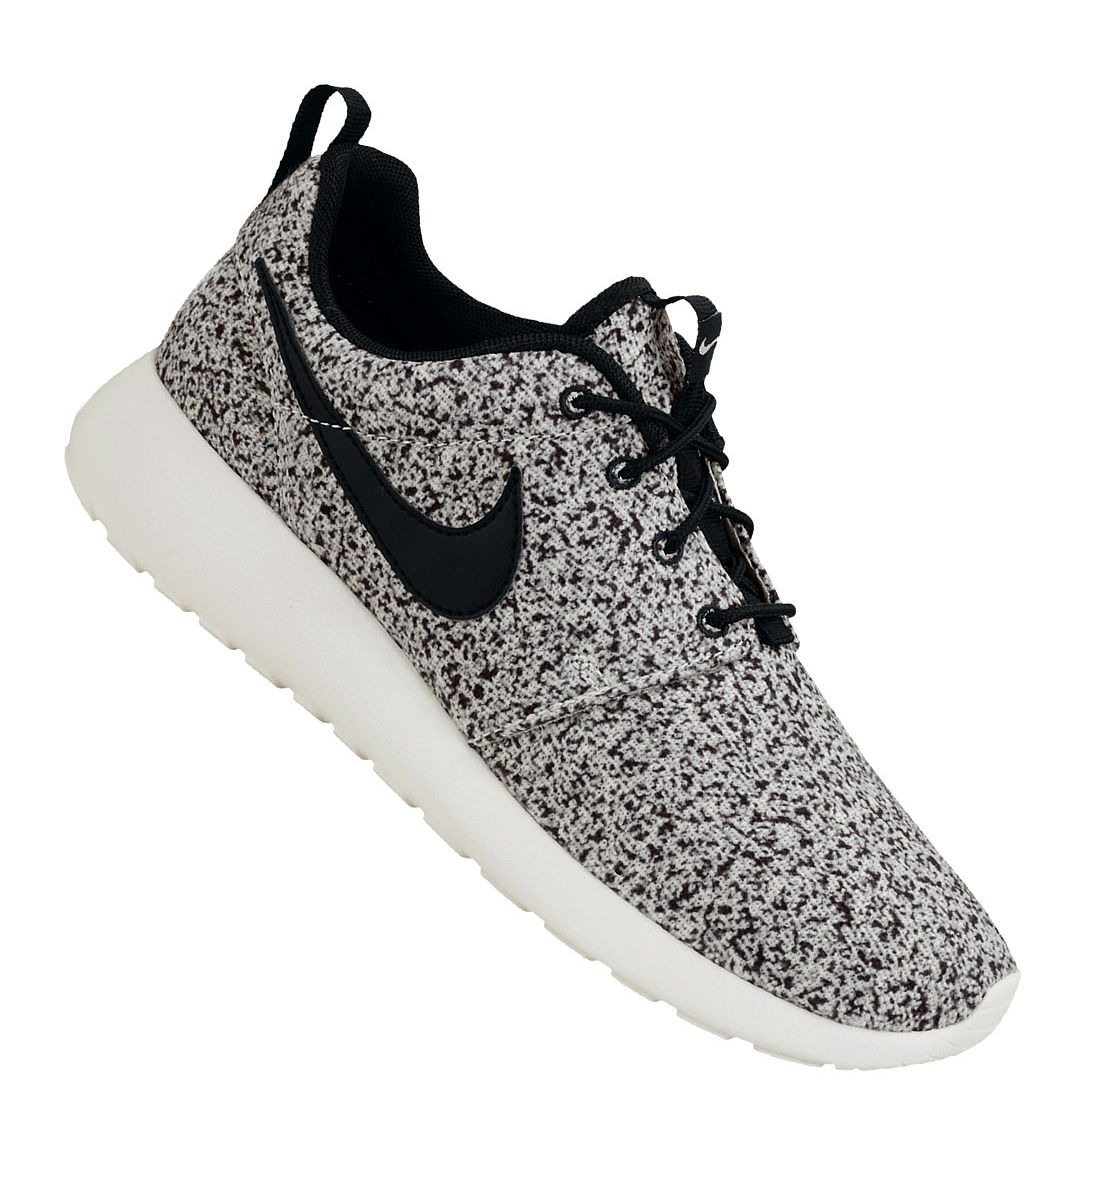 best sneakers 9bae8 62212 Nike Roshe Run WMNS - Speckle Pack   Sole Collector    So sick.